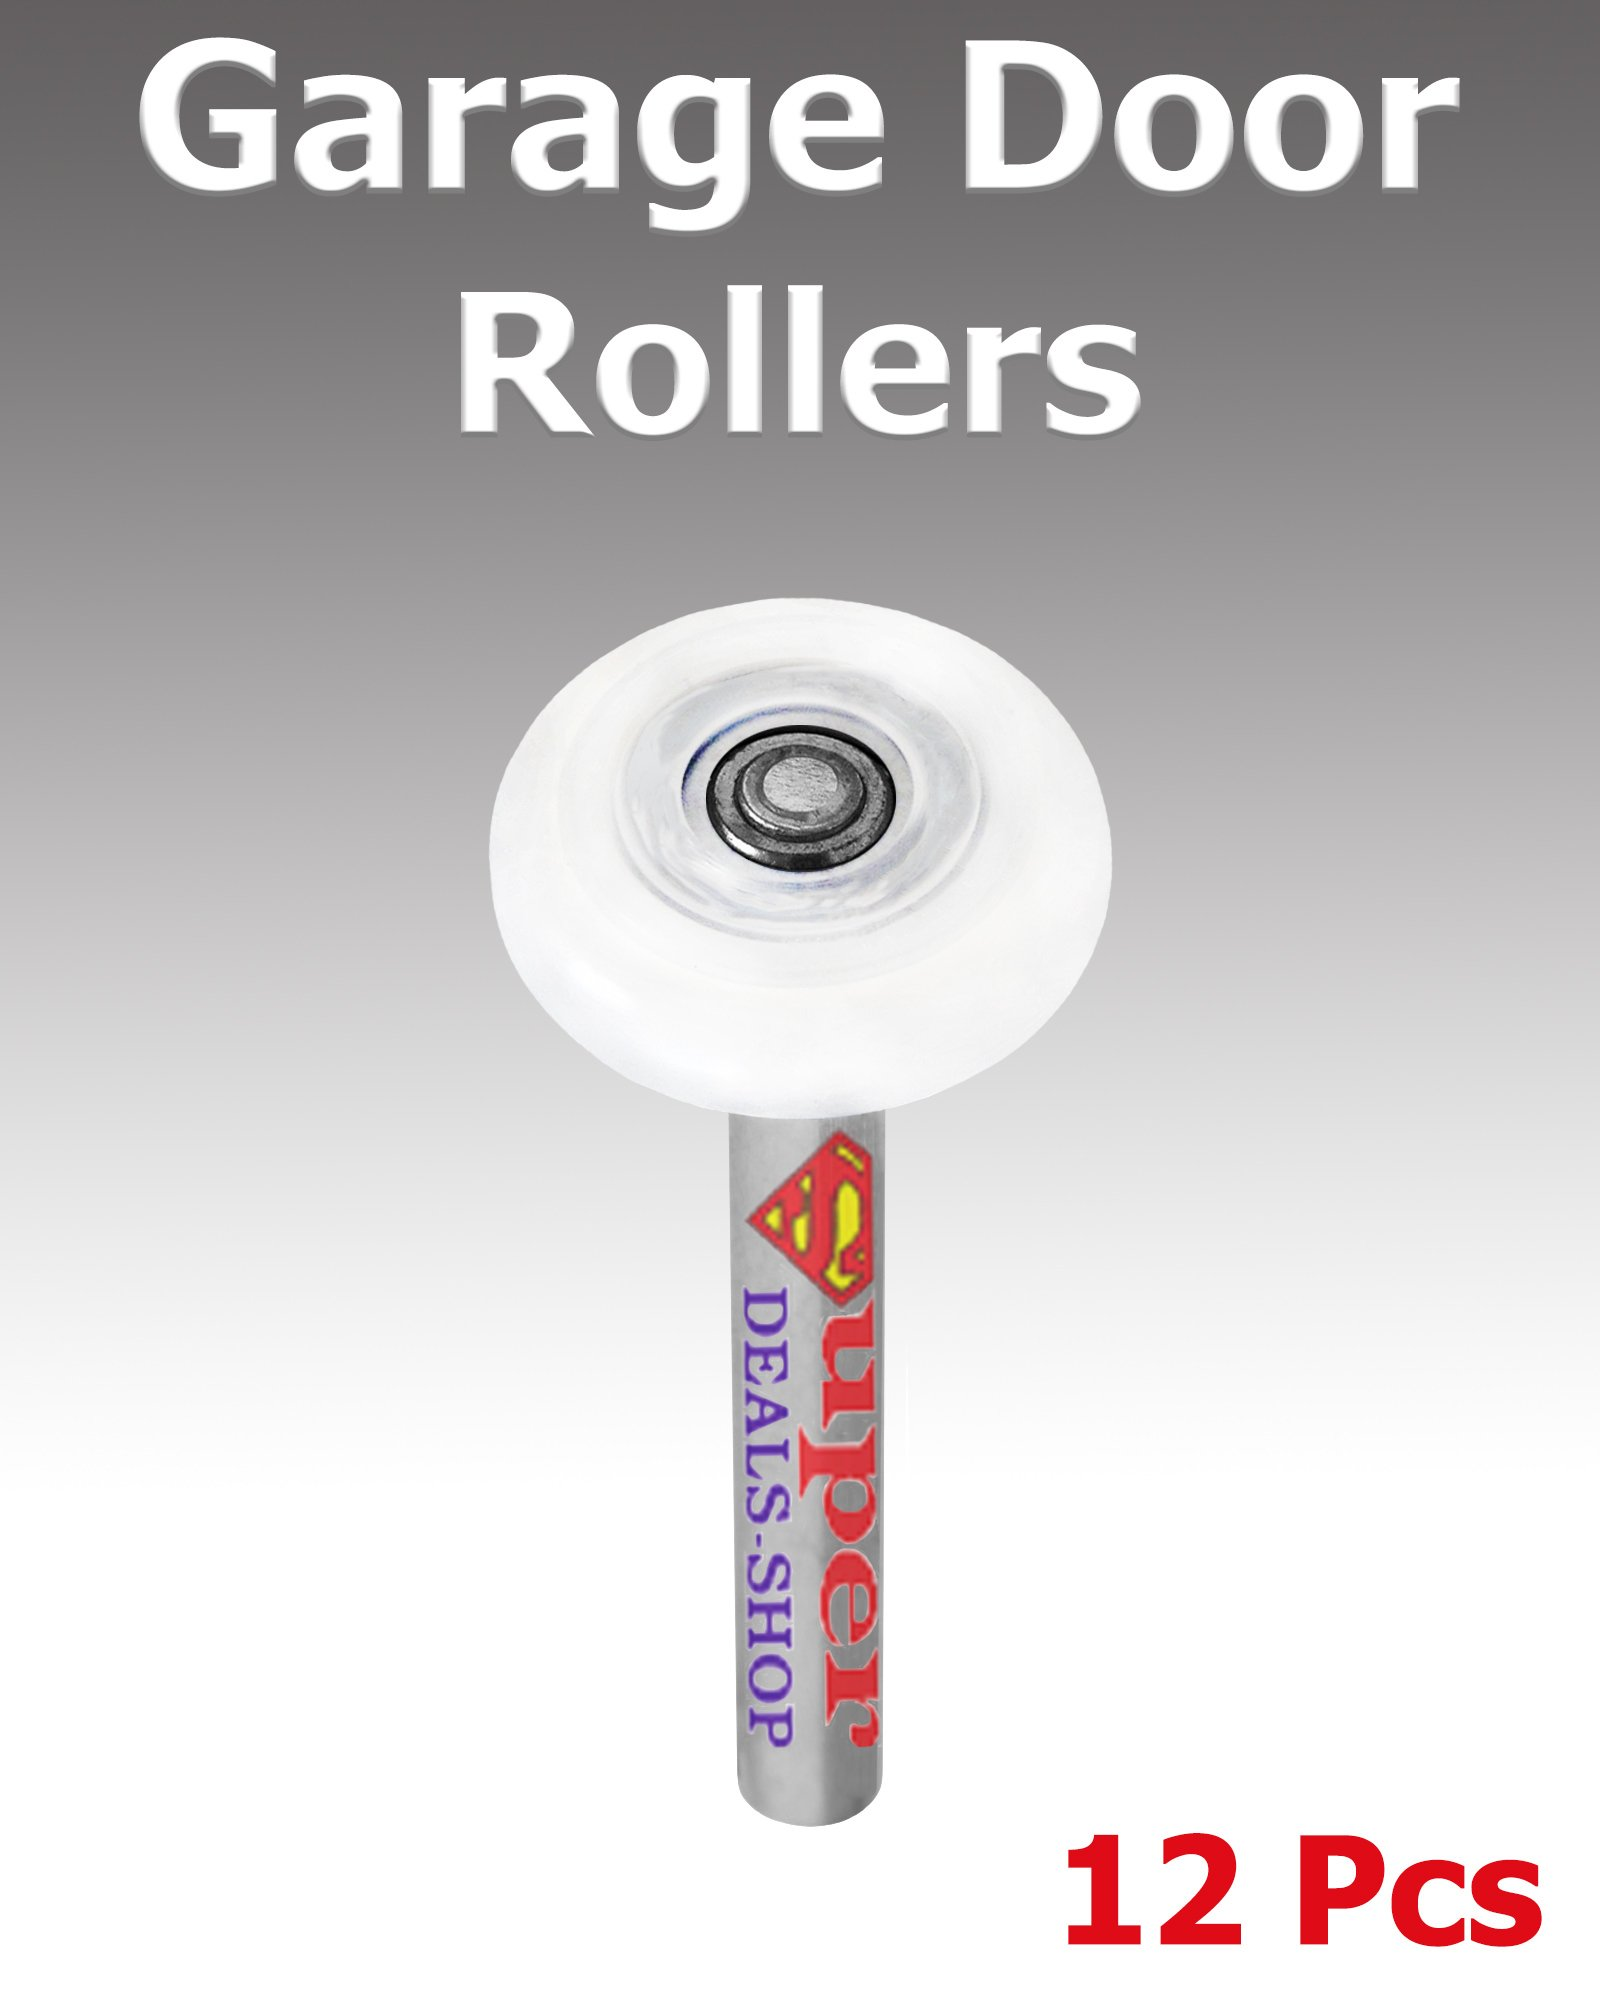 12 Pcs 2-Inch Choose Size/Quantity In Listing Nylon Garage Door Rollers Professional Grade with Precision 13-Ball Bearing and 7'' Stem Rotate Quiet and Long Life Super-Deals-Shop